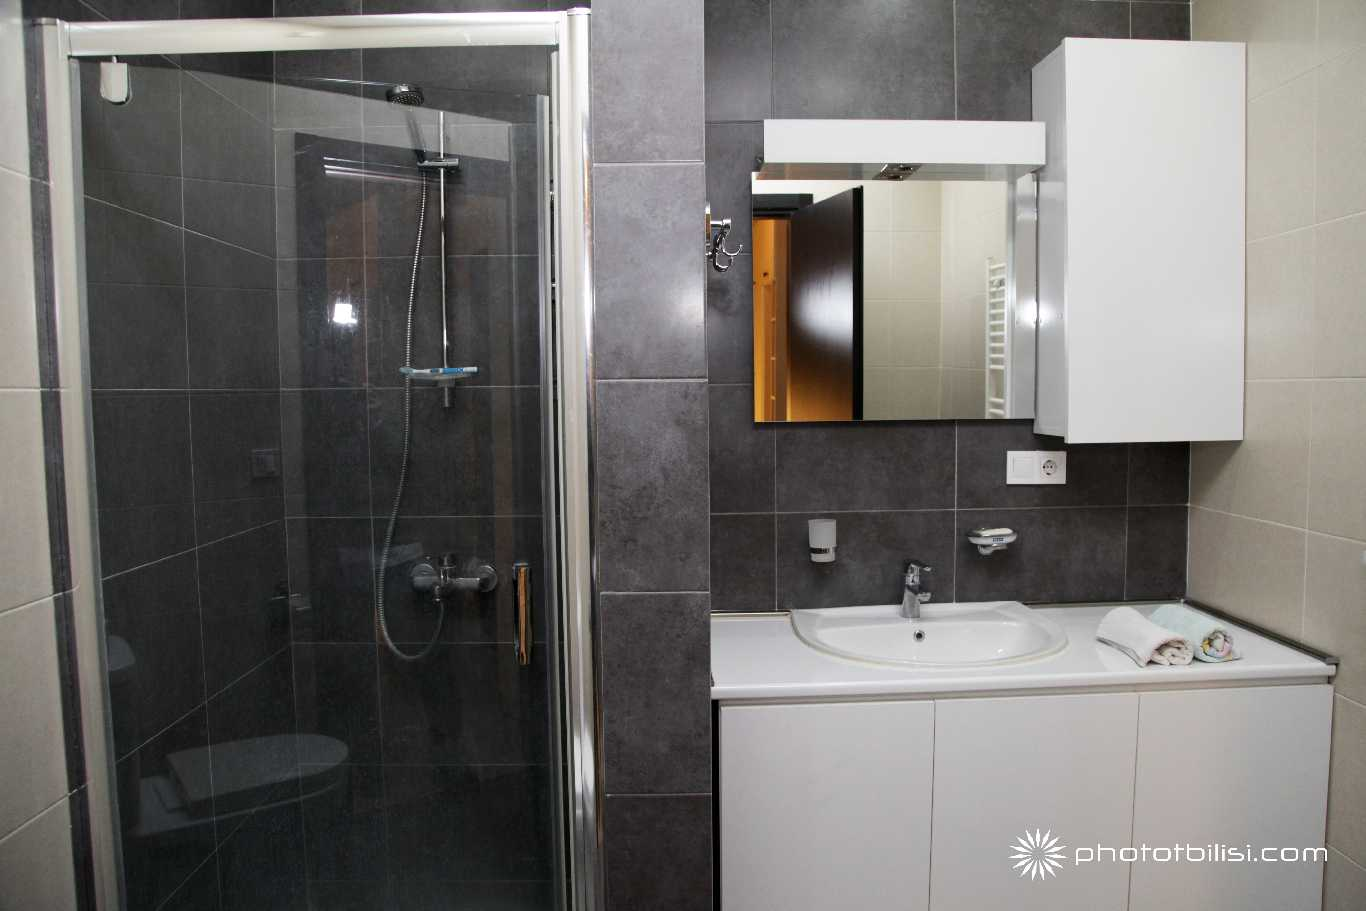 Rent-appartment-in-Tbilisi-IMG_0917